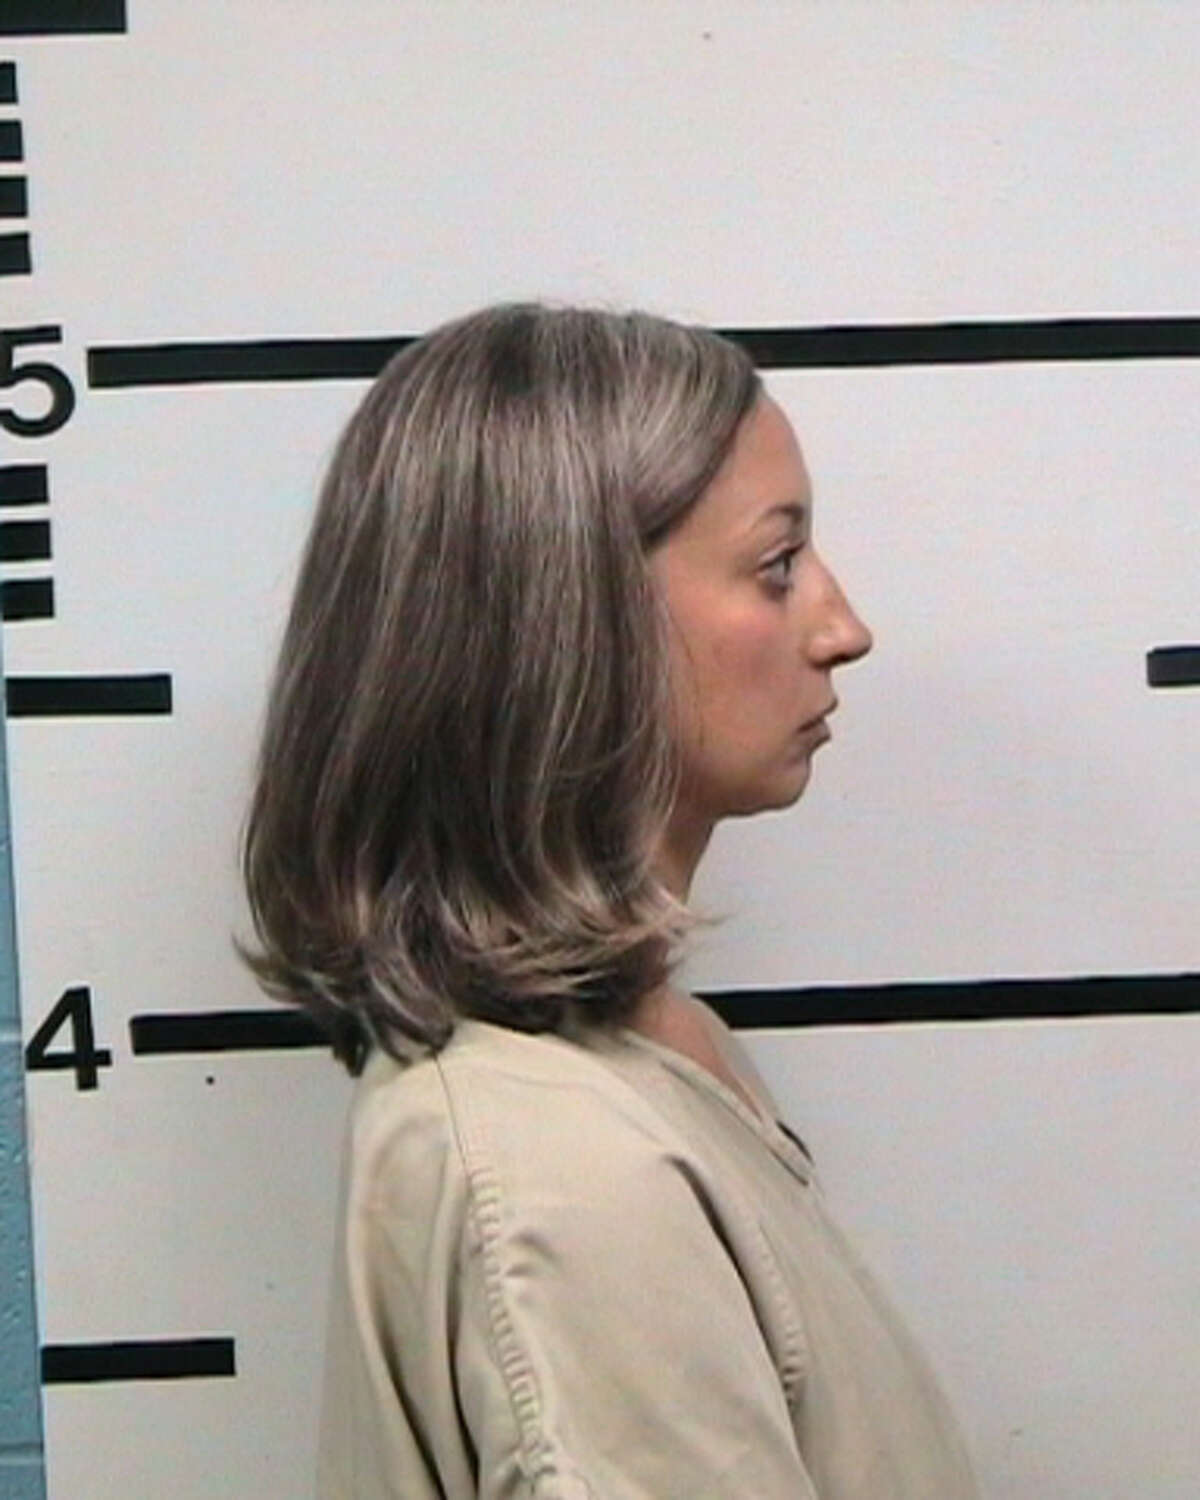 Sara Kathryn D'Spain of Bandera, Texas, now faces one charge of improper relationship between an educator and student. She was booked into the Kerr County Jail on a $35,000 bond and has since bailed out.